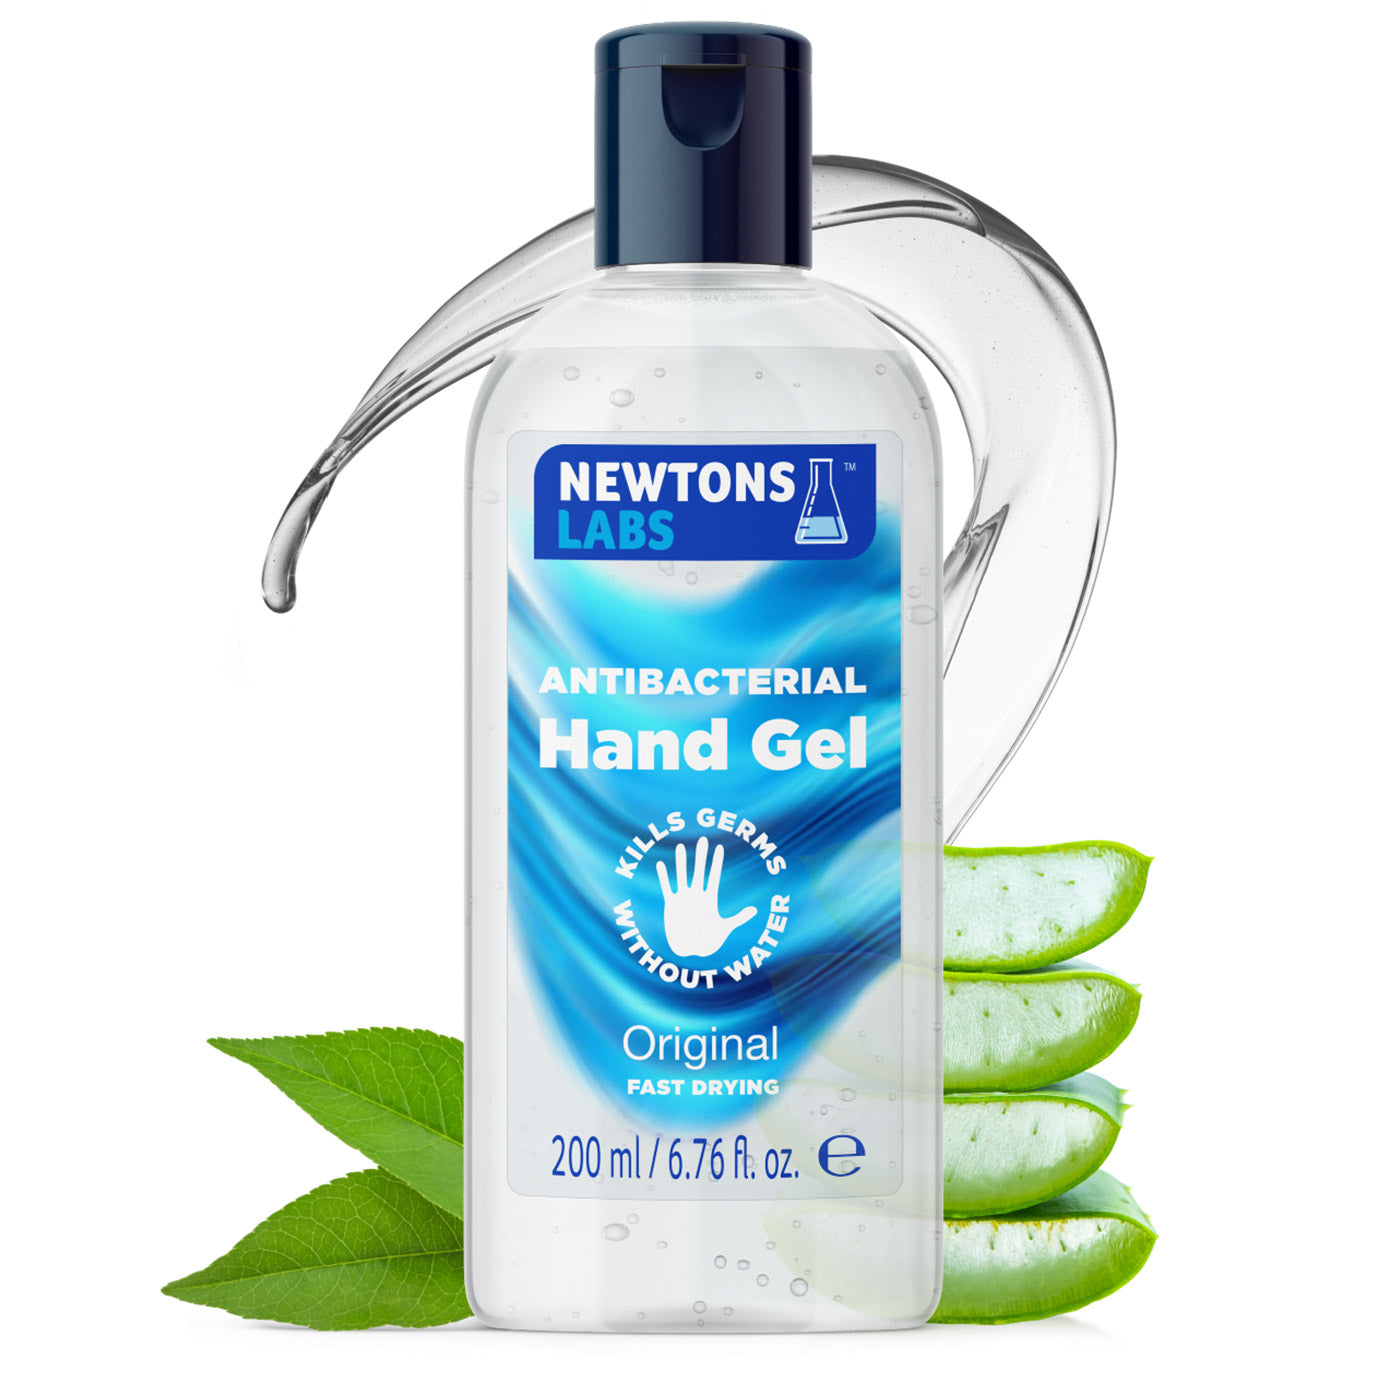 24 Bottles - Antibacterial Hand Gel & Sanitiser - 200ml